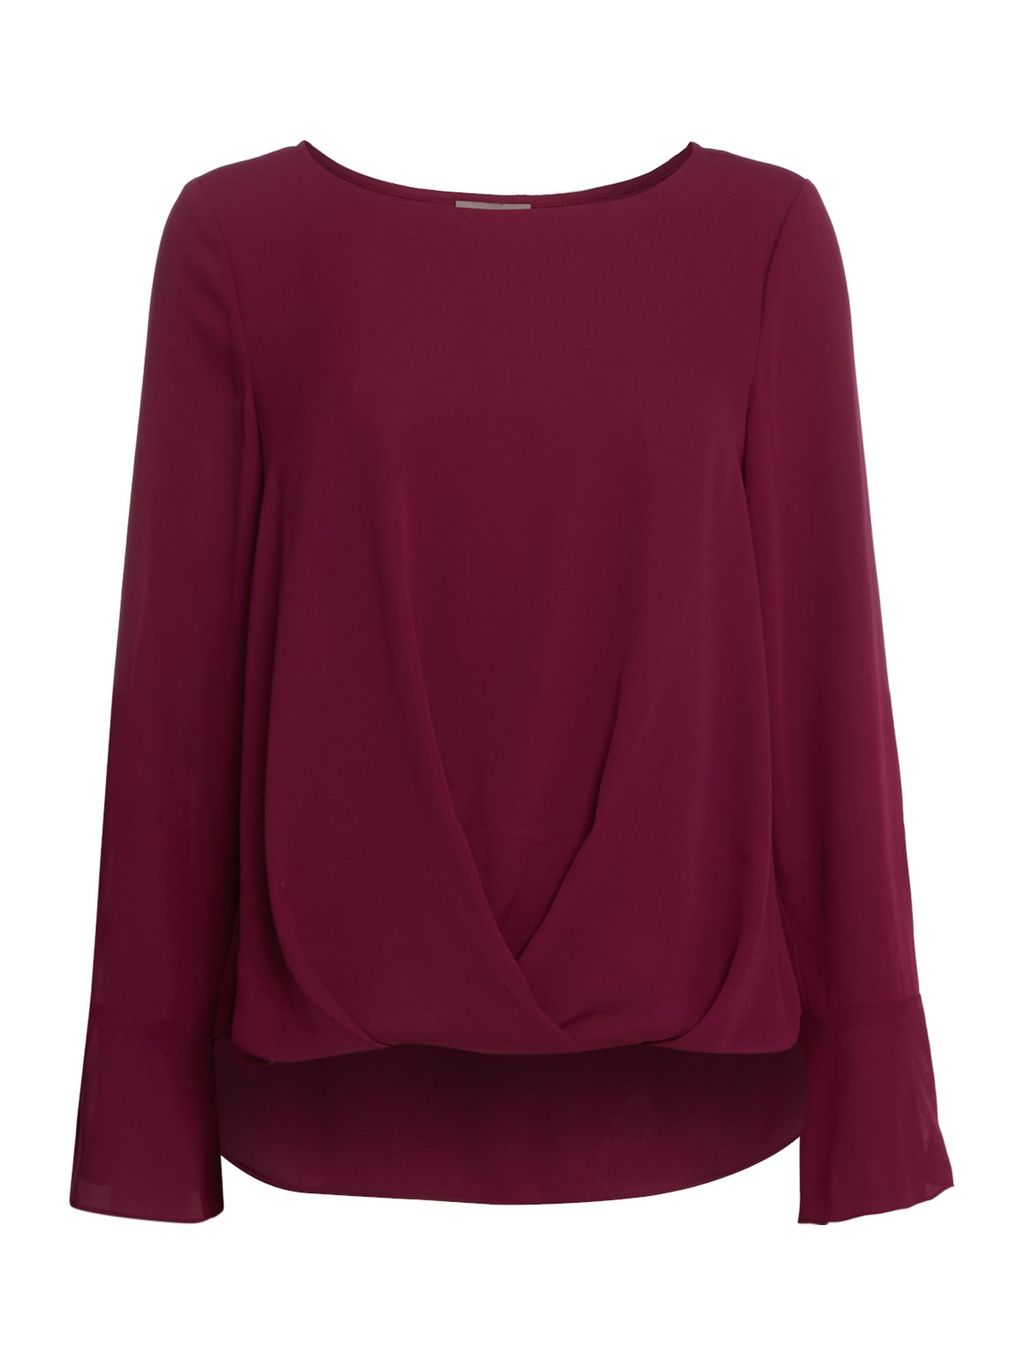 Long Sleeve Woven Blouse, Plum - neckline: round neck; pattern: plain; style: blouse; predominant colour: purple; occasions: casual, creative work; length: standard; fibres: polyester/polyamide - 100%; fit: body skimming; sleeve length: long sleeve; sleeve style: standard; pattern type: fabric; texture group: suede; season: s/s 2016